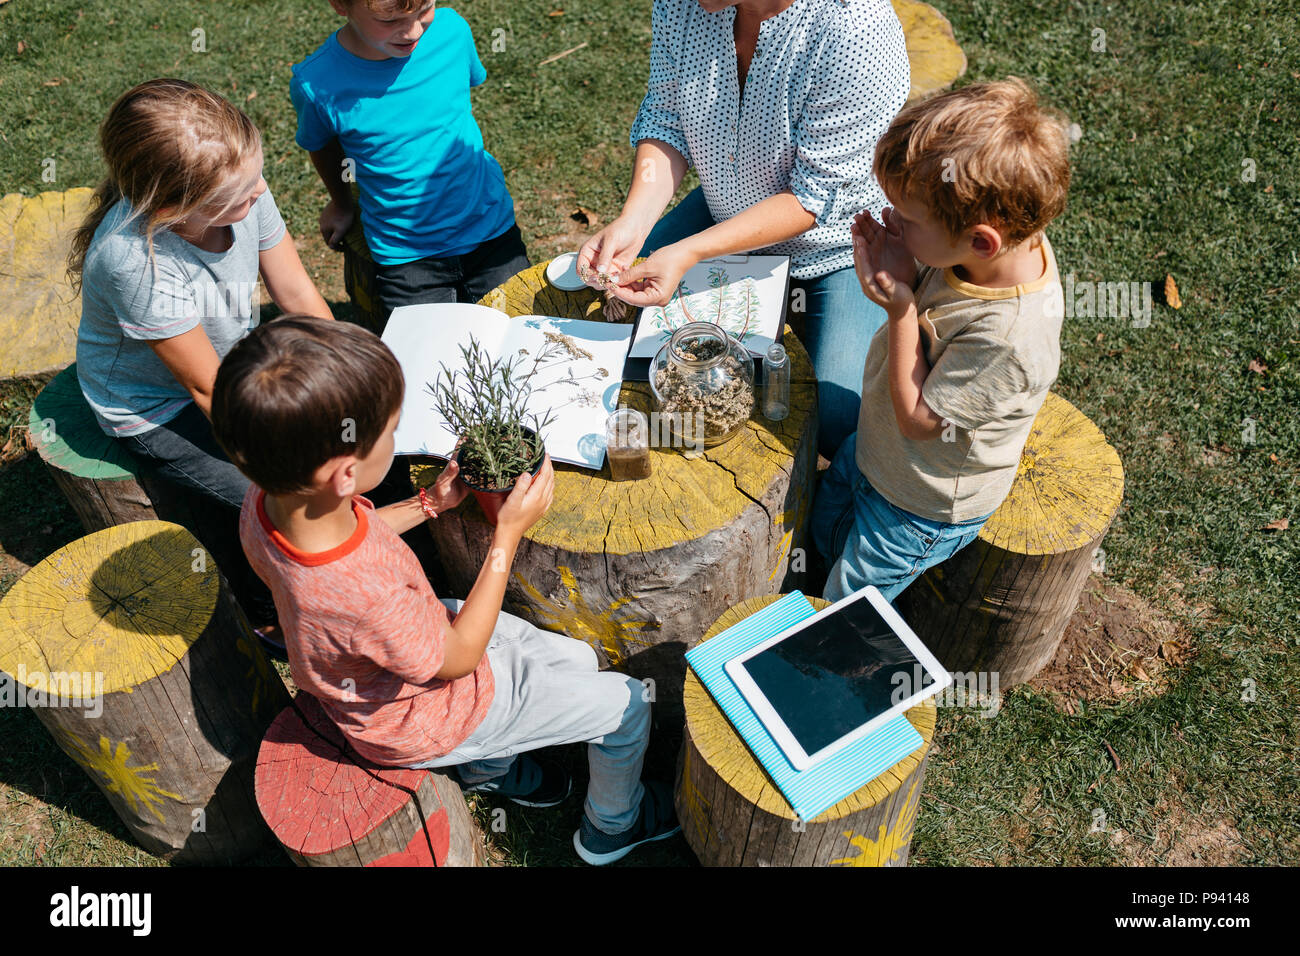 Young primary students exploring herbs through their senses in a garden. Top view of school children sitting around a table and learning about plants. - Stock Image